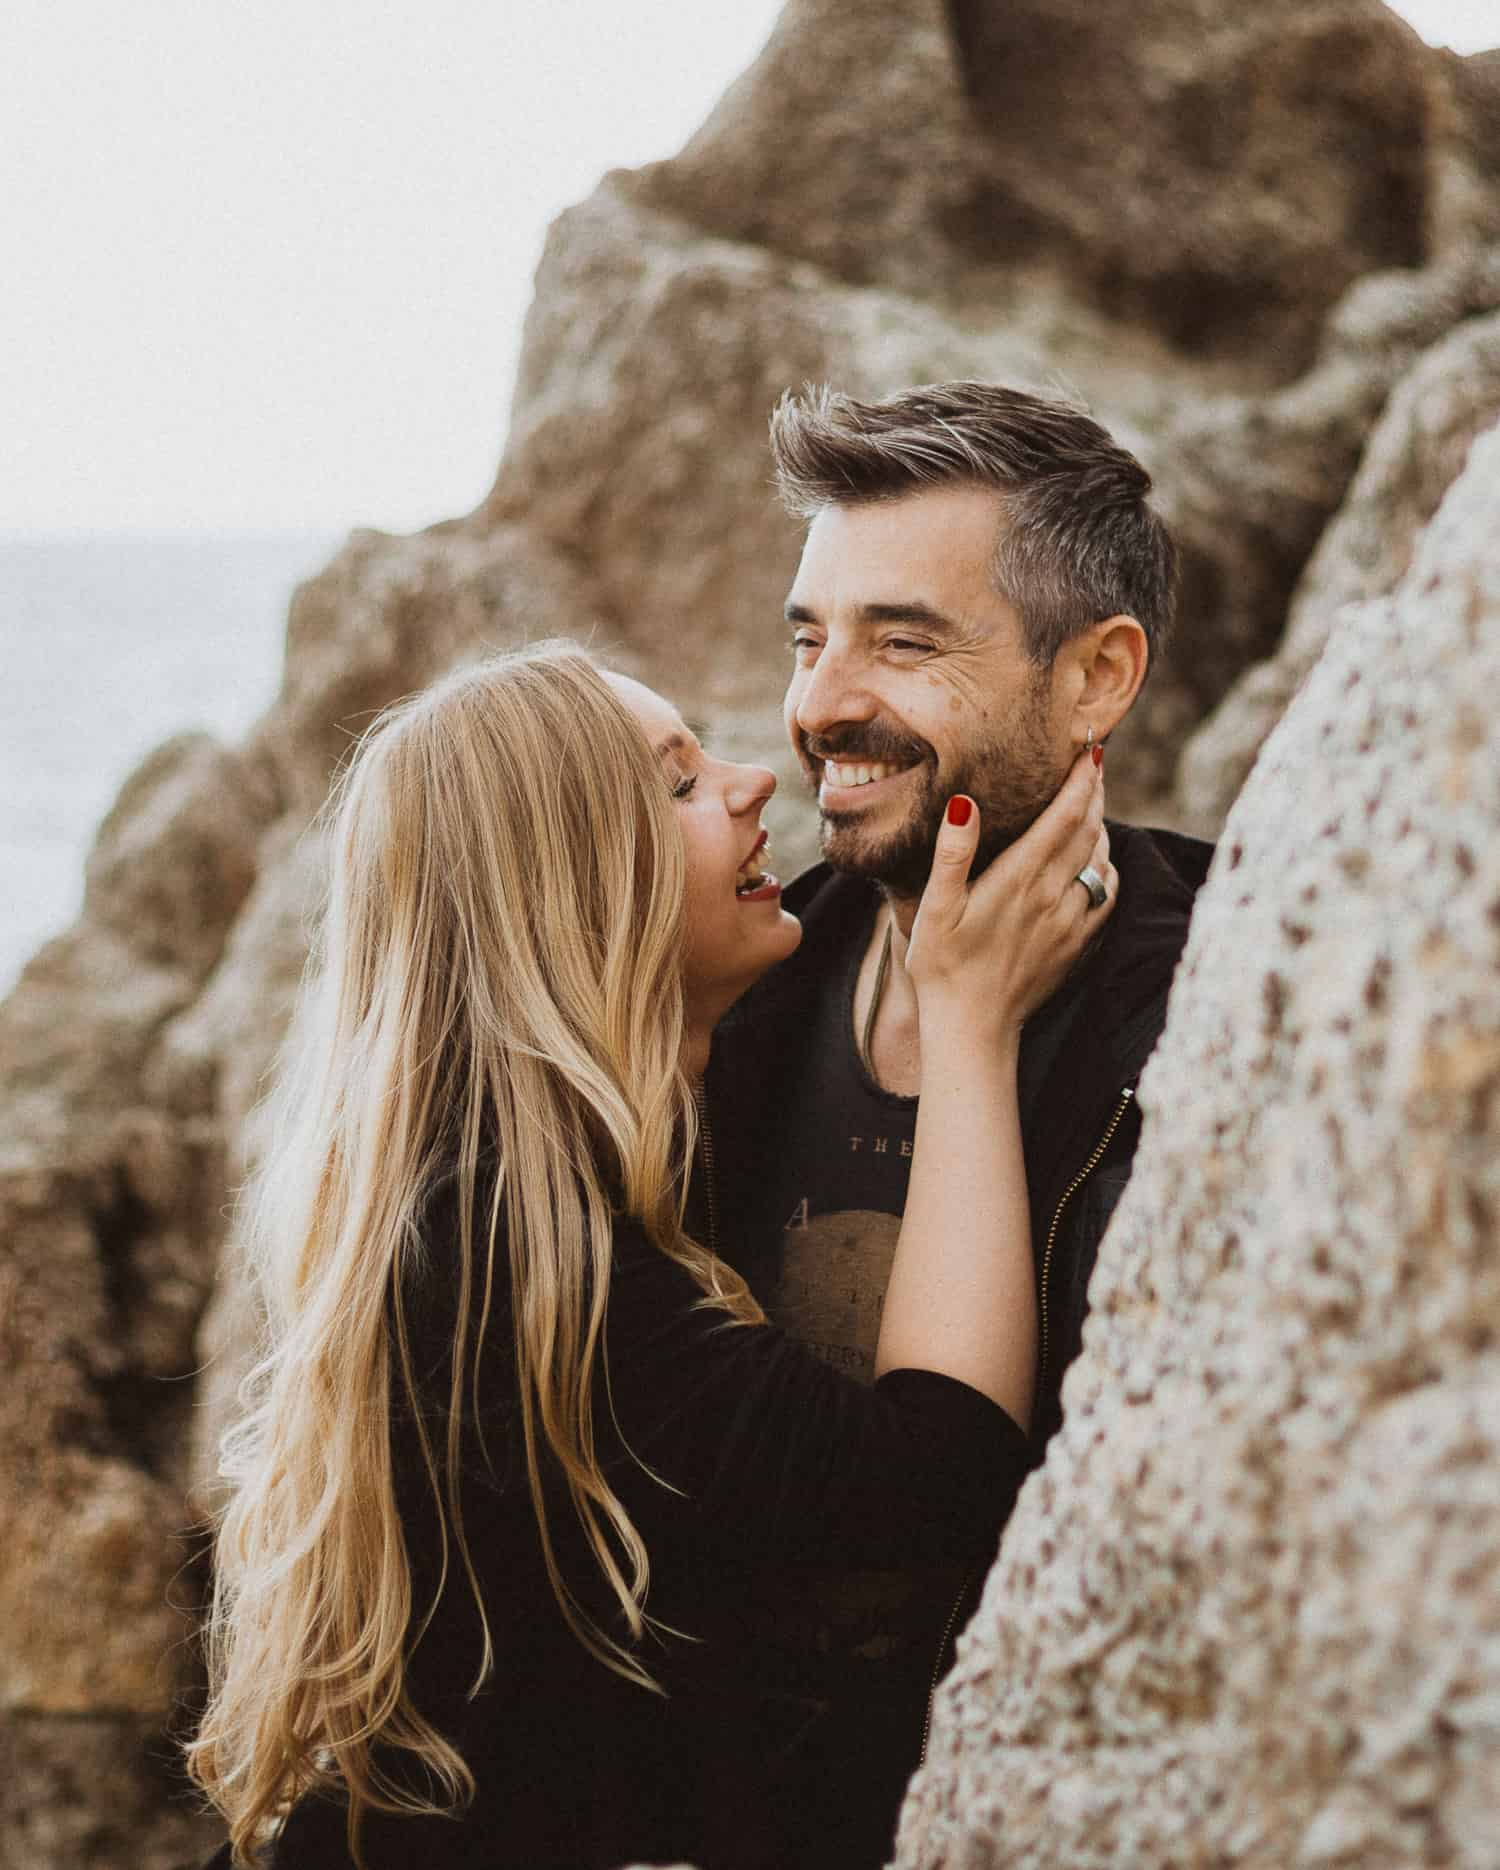 Engagement photo shoot in the beach, Spain